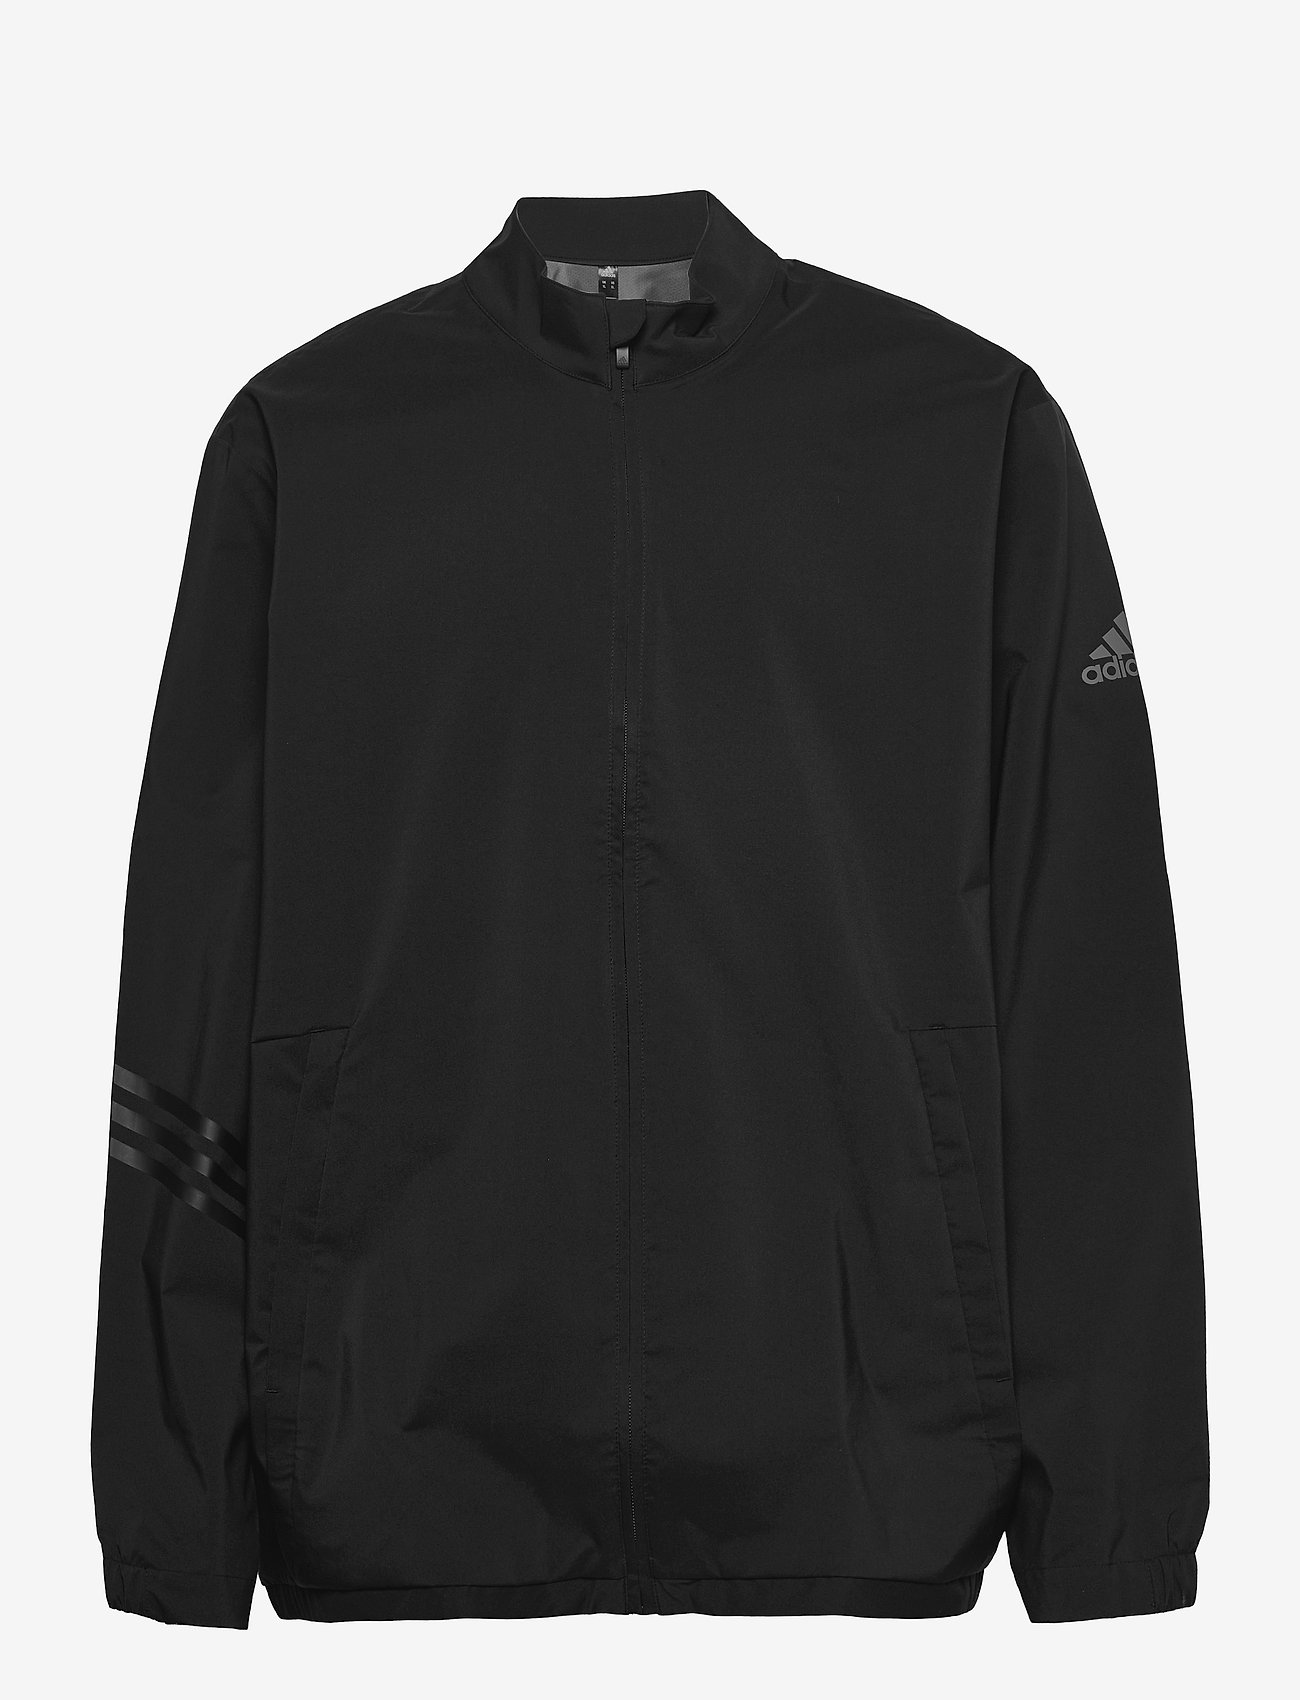 adidas Golf - PROV R JACKET - golf jackets - black - 0